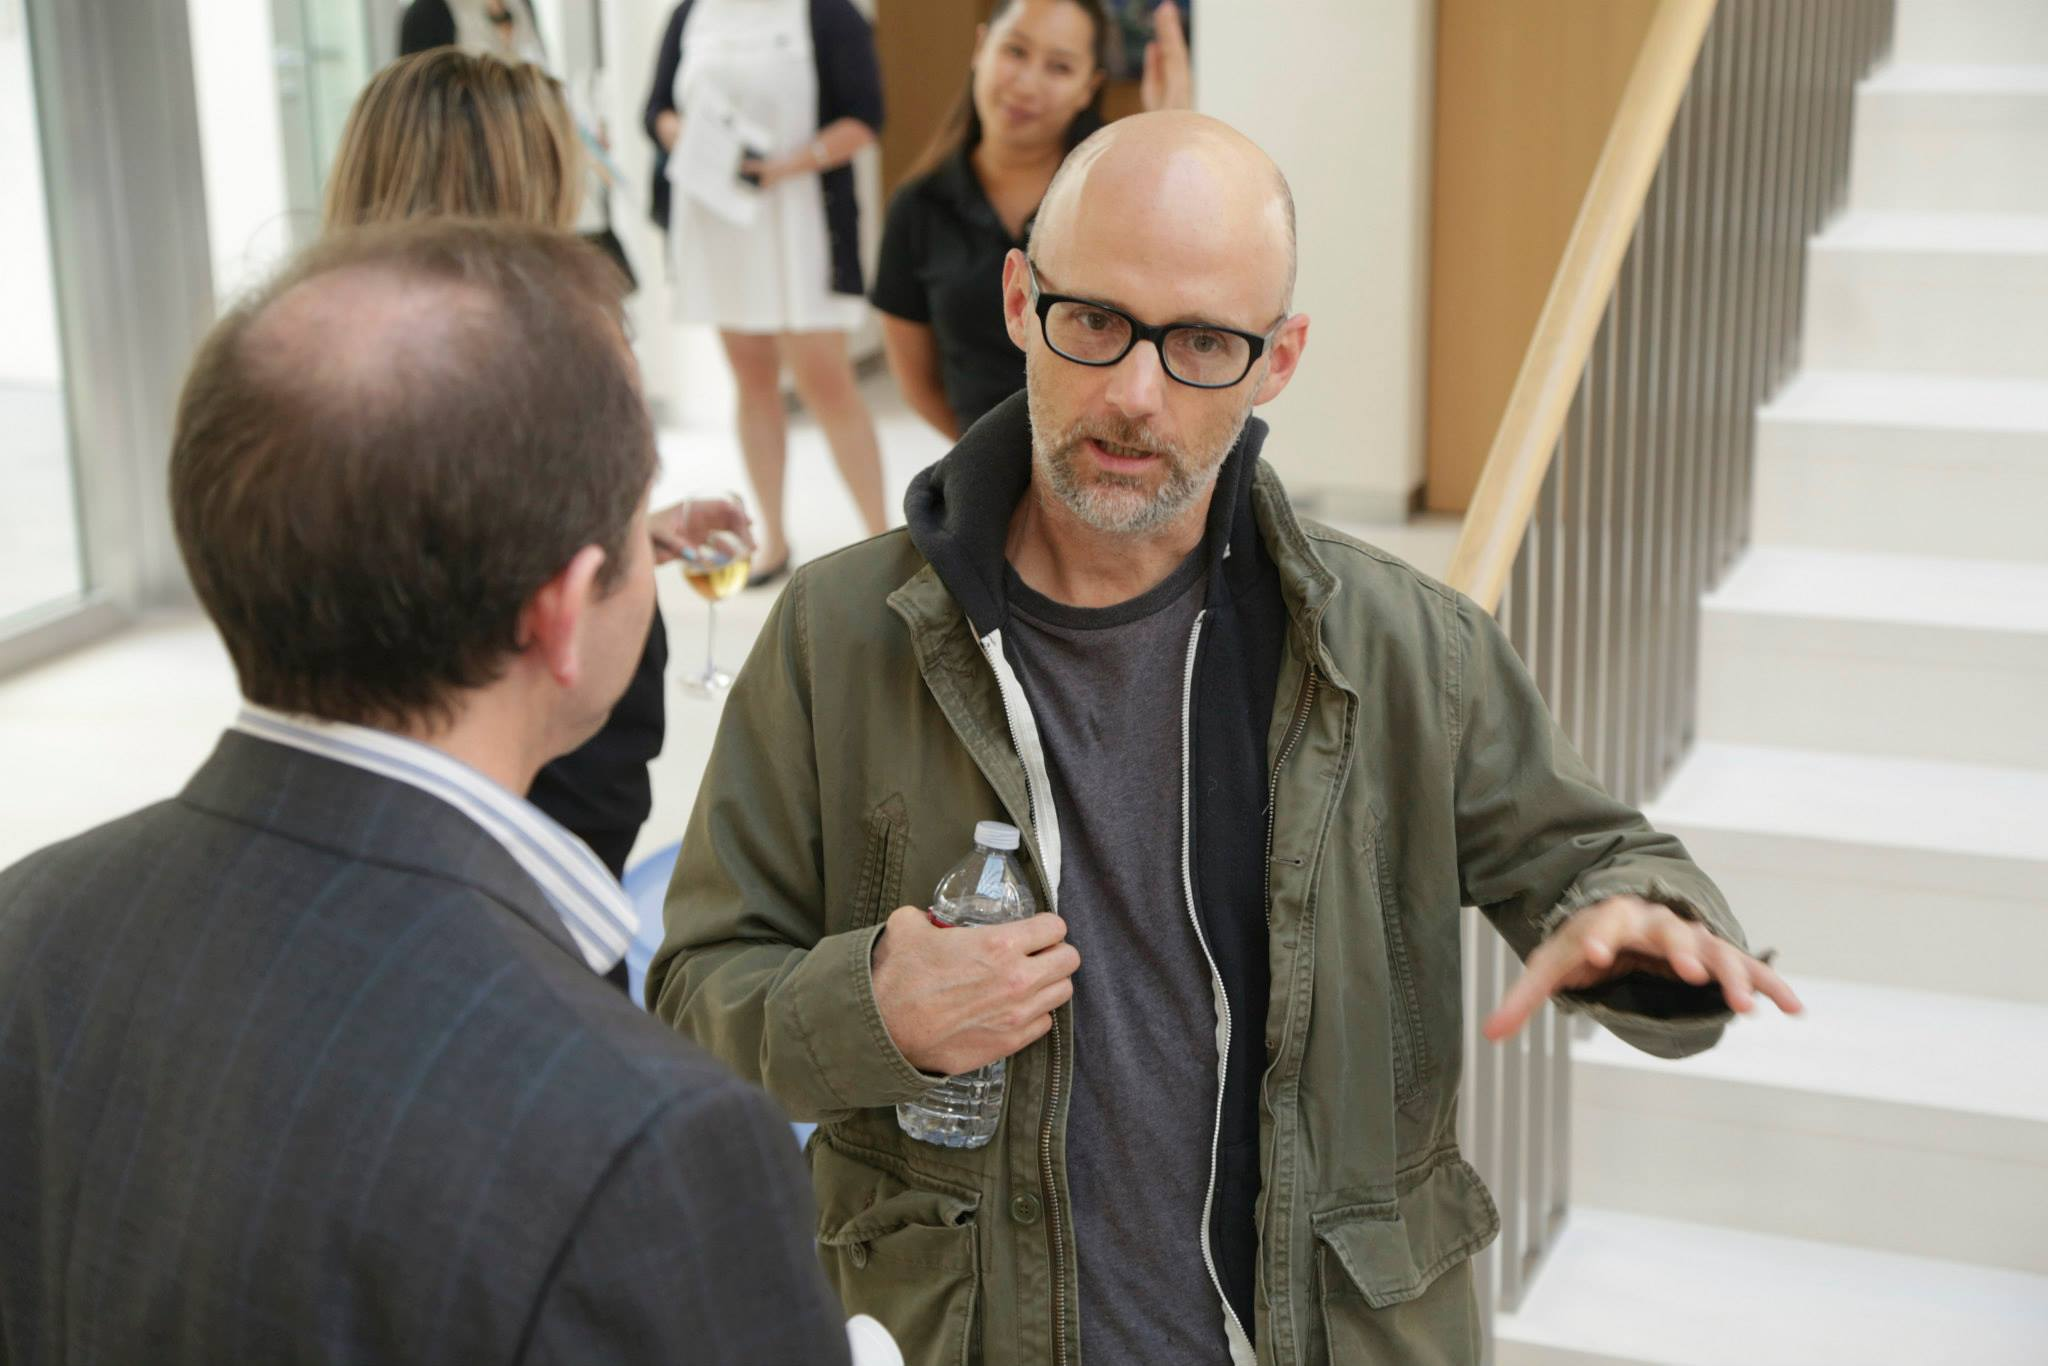 Award winning musician and activist   Moby at the   Future of Cities event in Beverly Hills   on June 2nd.